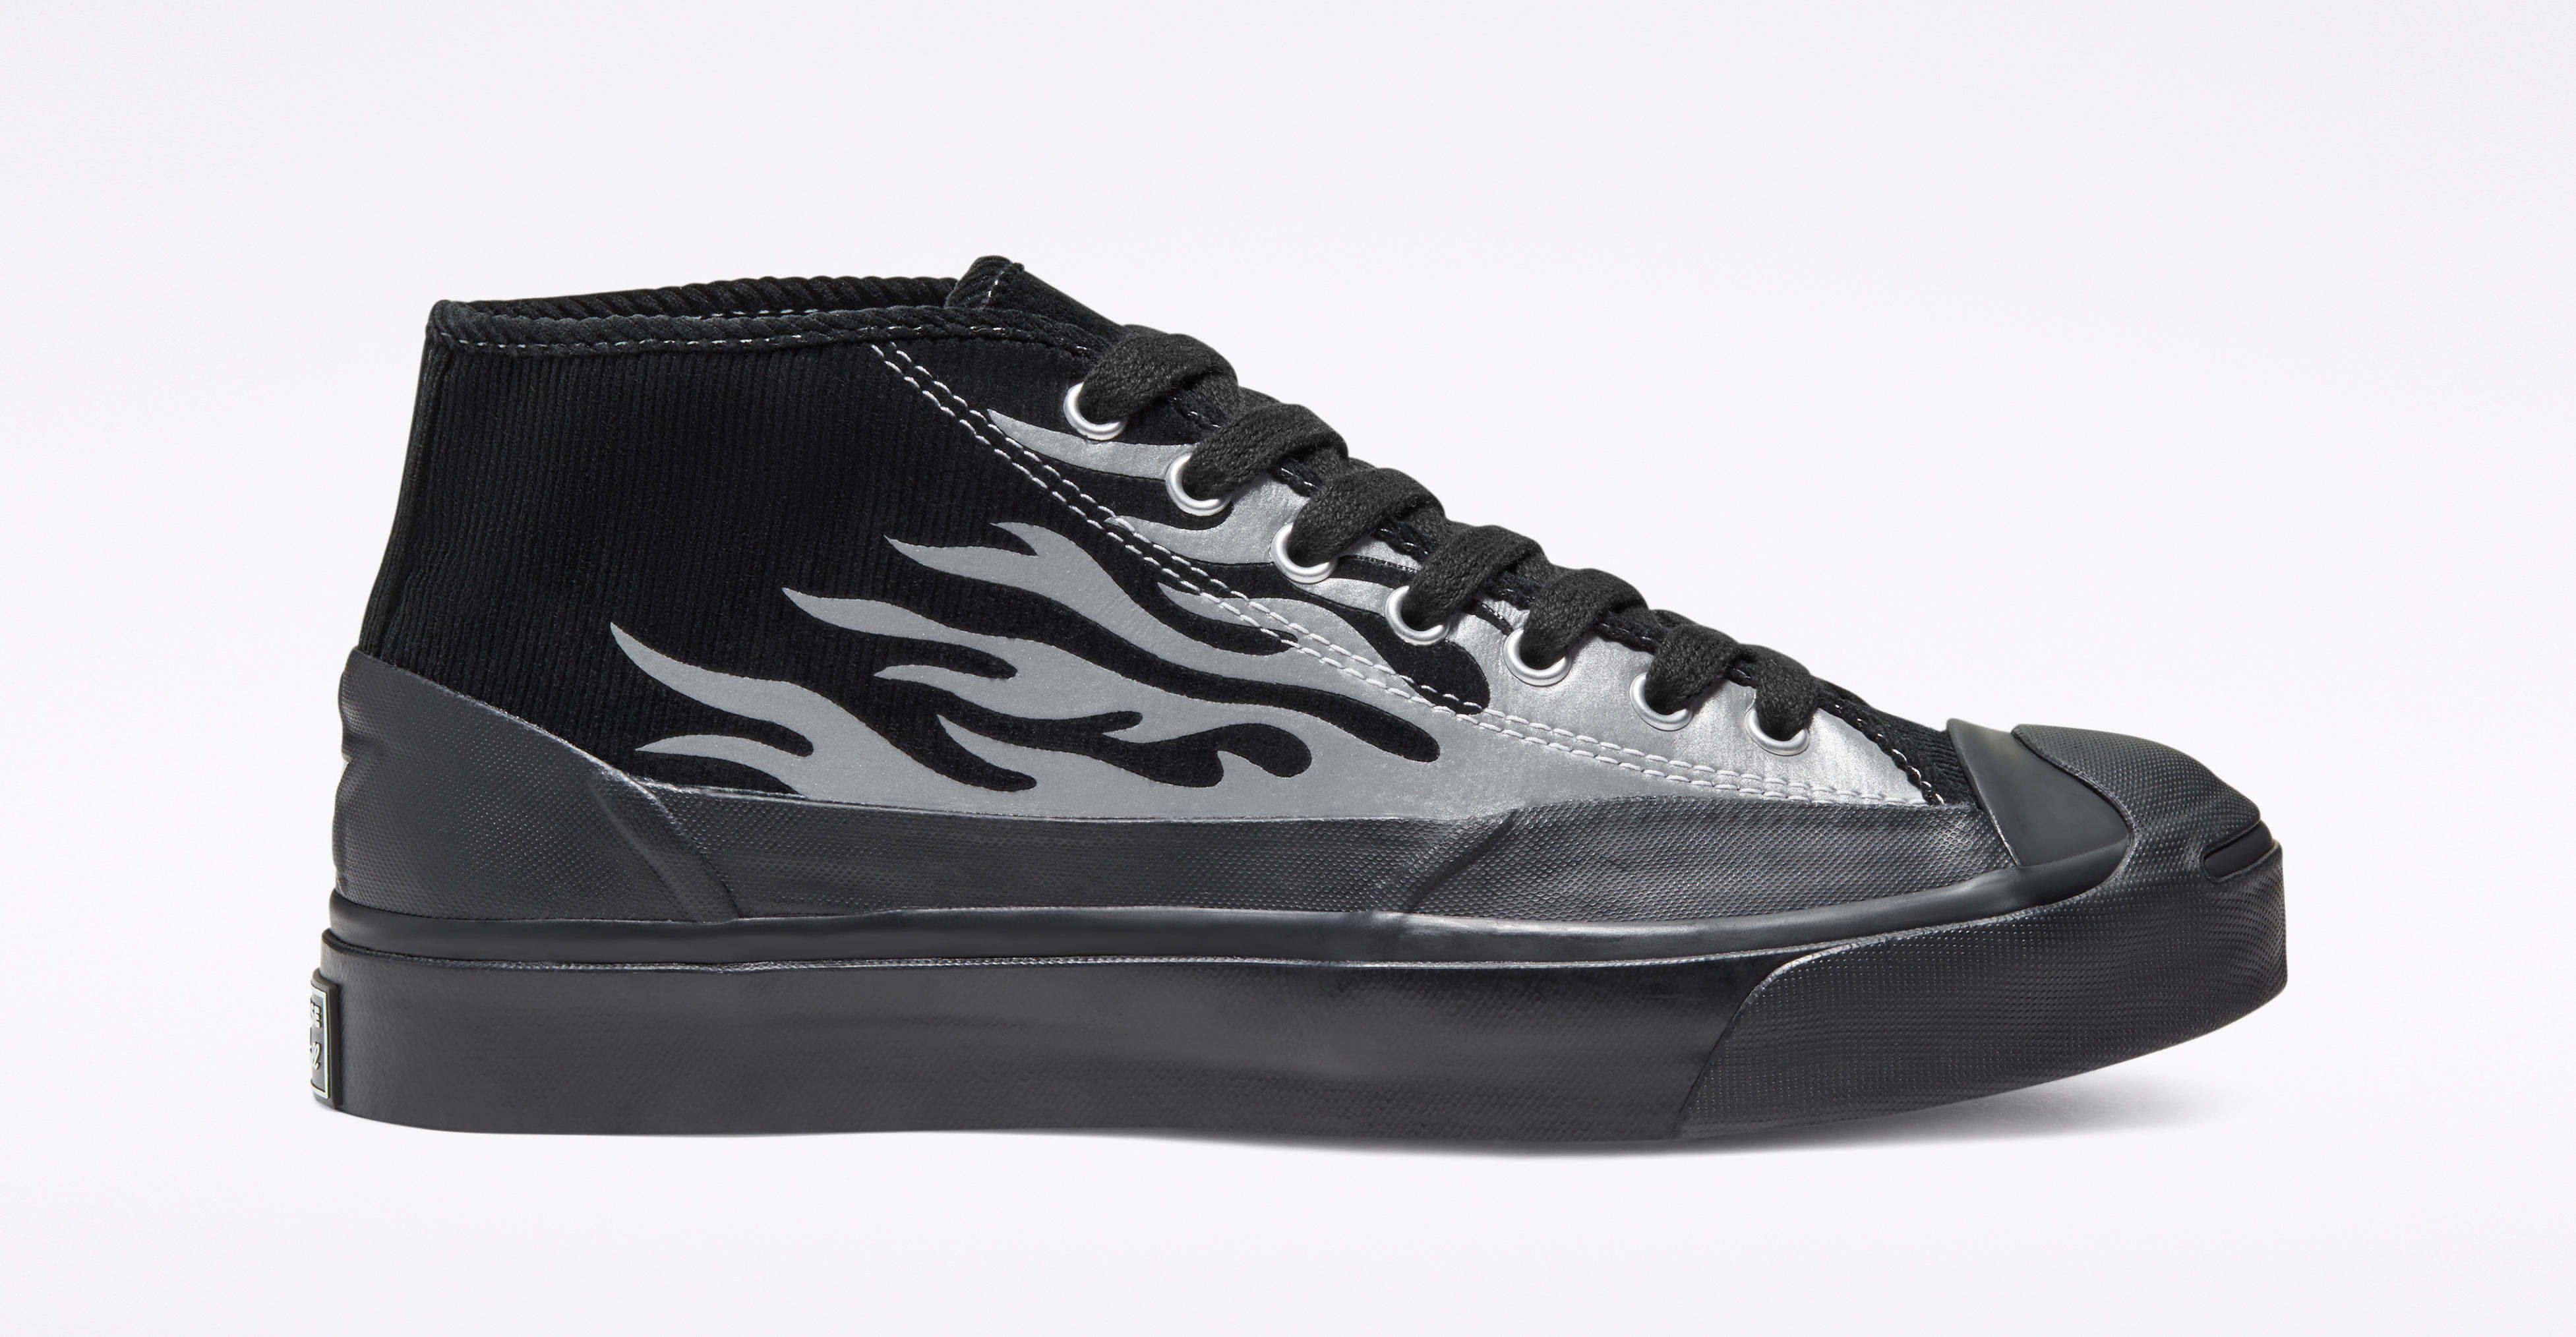 asap-nast-converse-jack-purcell-mid-black-167379c-lateral